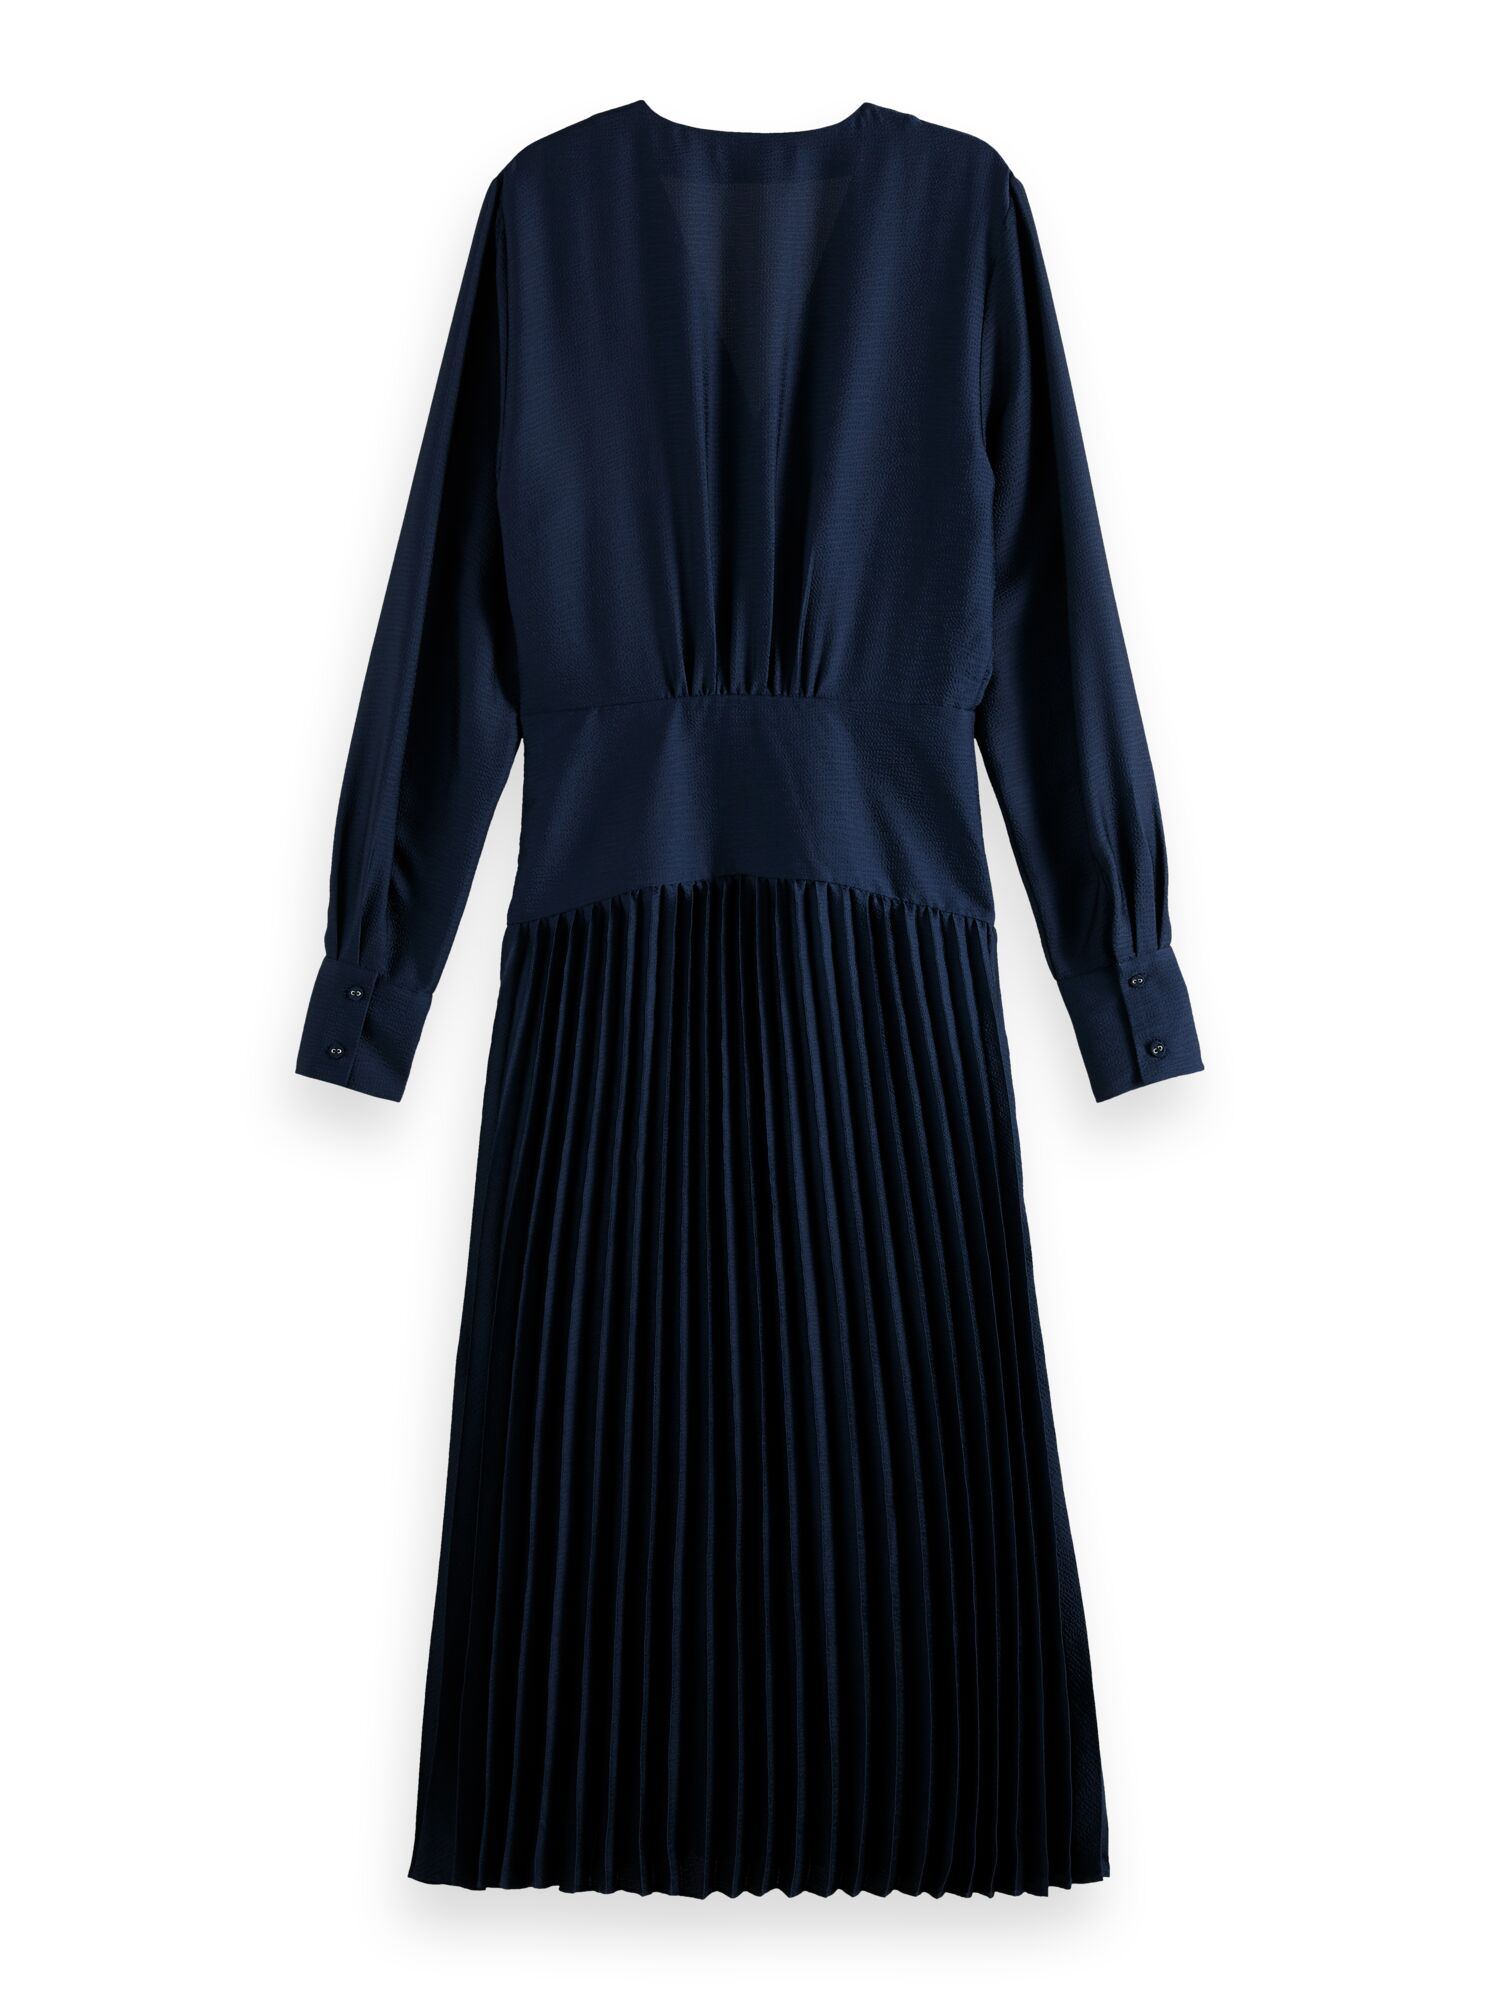 Scotch & Soda   Feminine dress with pleated skirt in structured quality